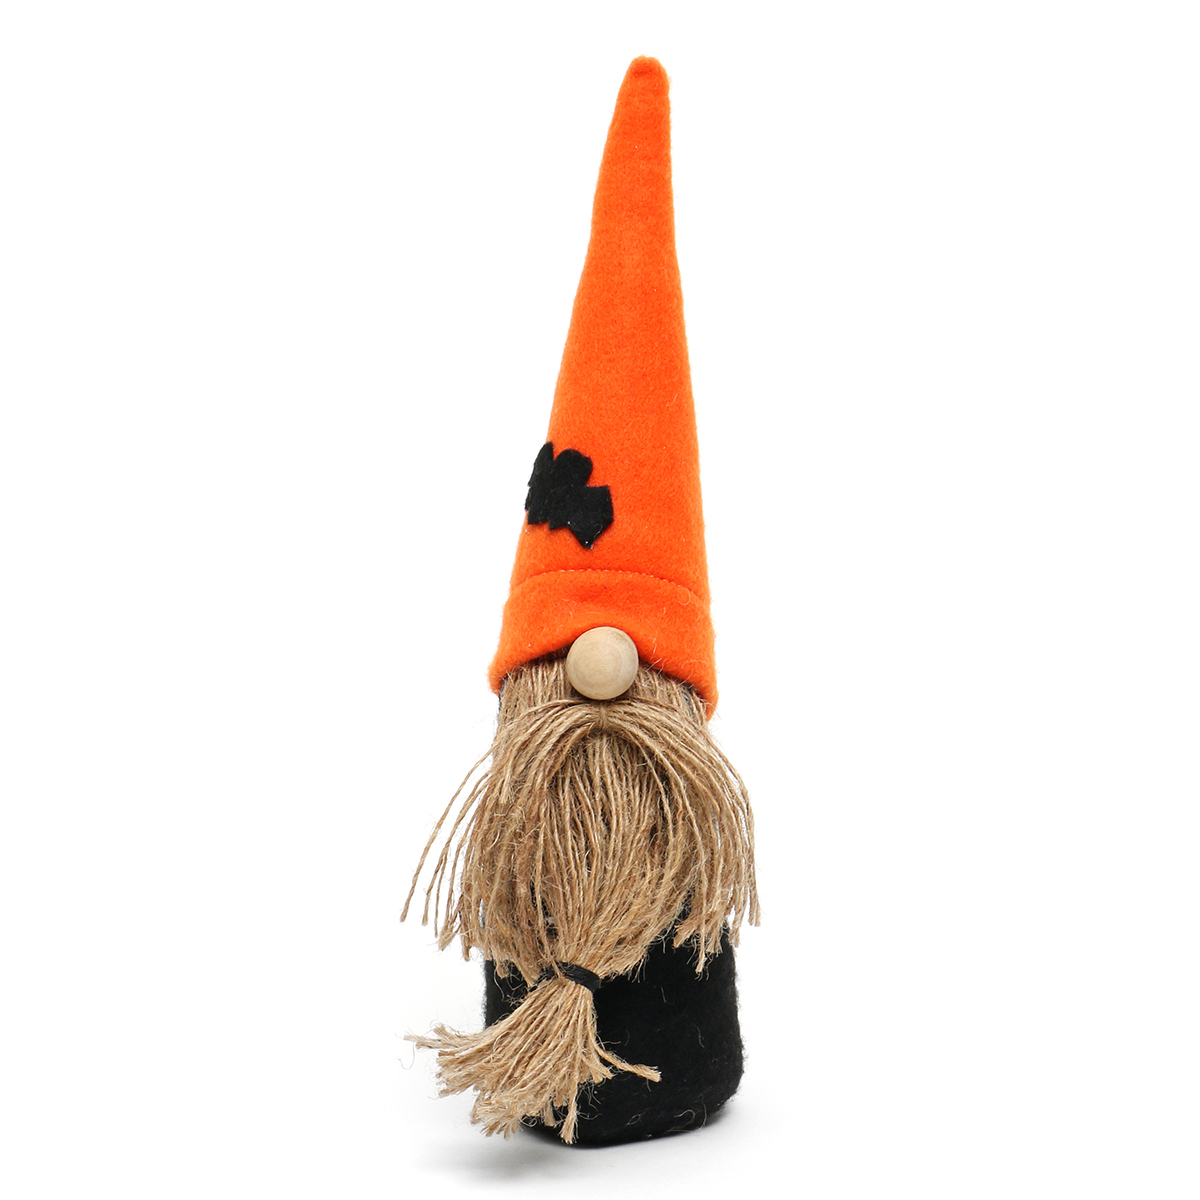 WARLOCK GNOME WITH ORANGE HAT,